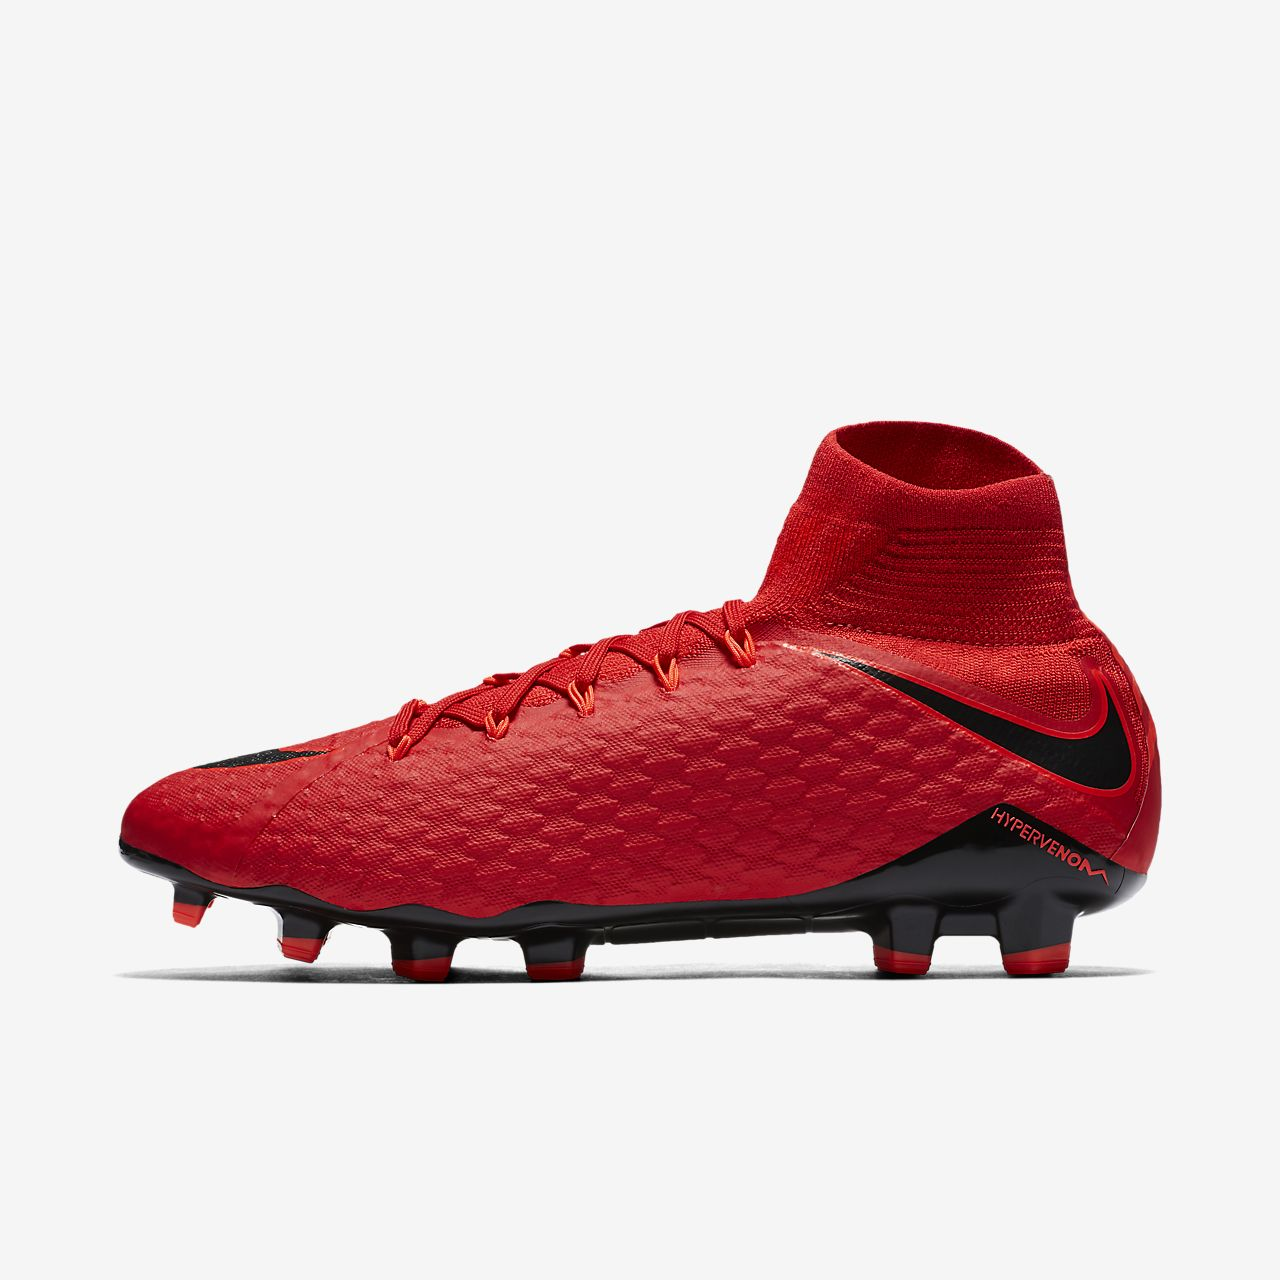 Nike Mercurial Veloce III Firm-Ground Women's Football Shoes Red/Black hI4422A